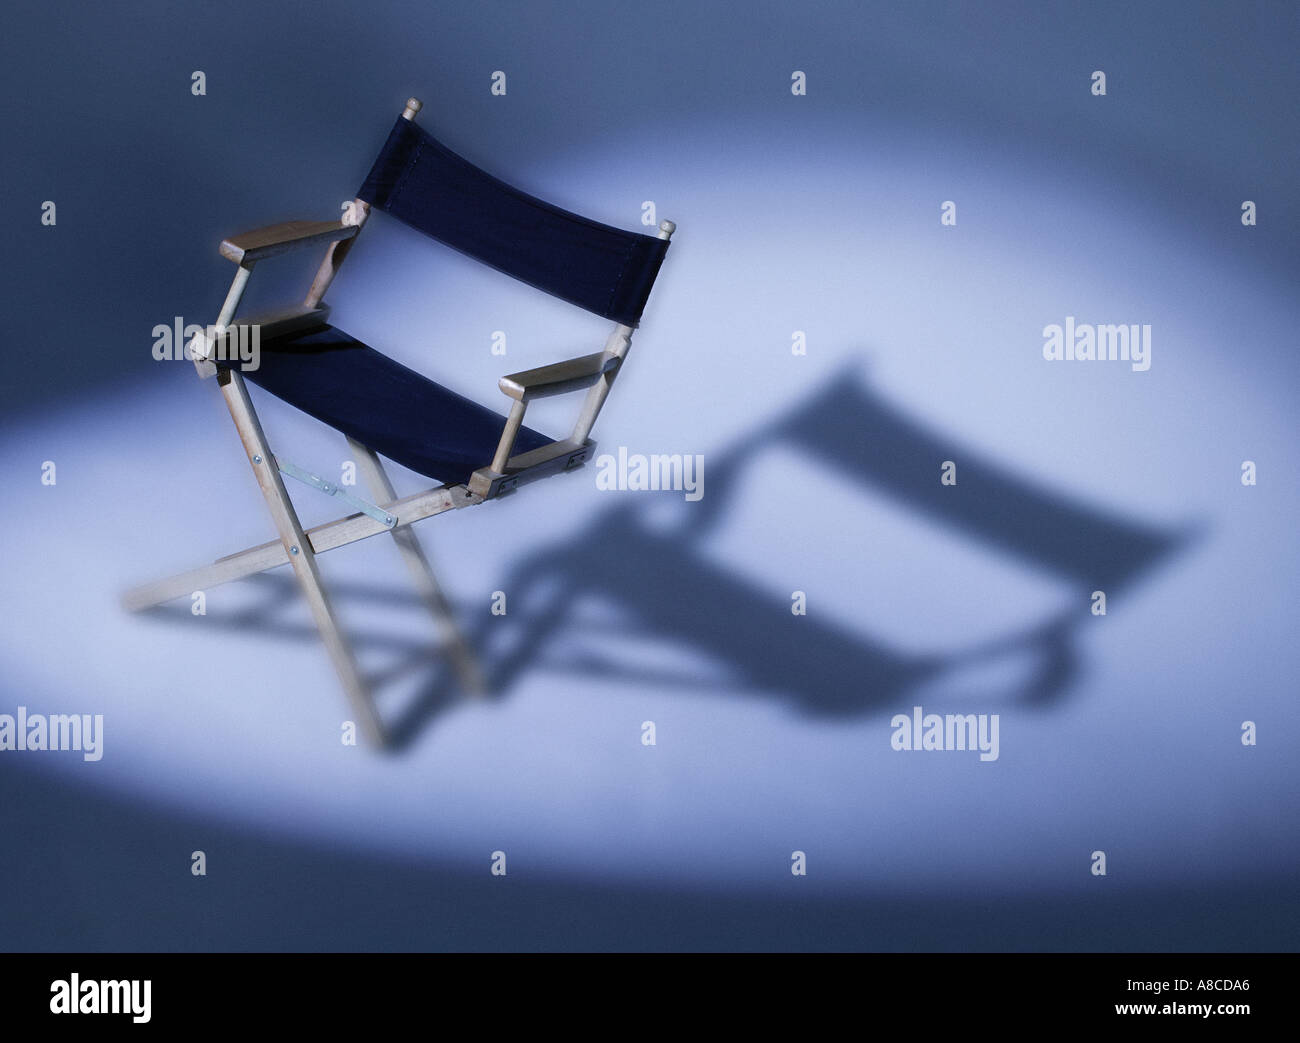 FOLDING WOOD AND CANVAS FILM DIRECTORS CHAIR IN SPOTLIGHT BEAM - Stock Image